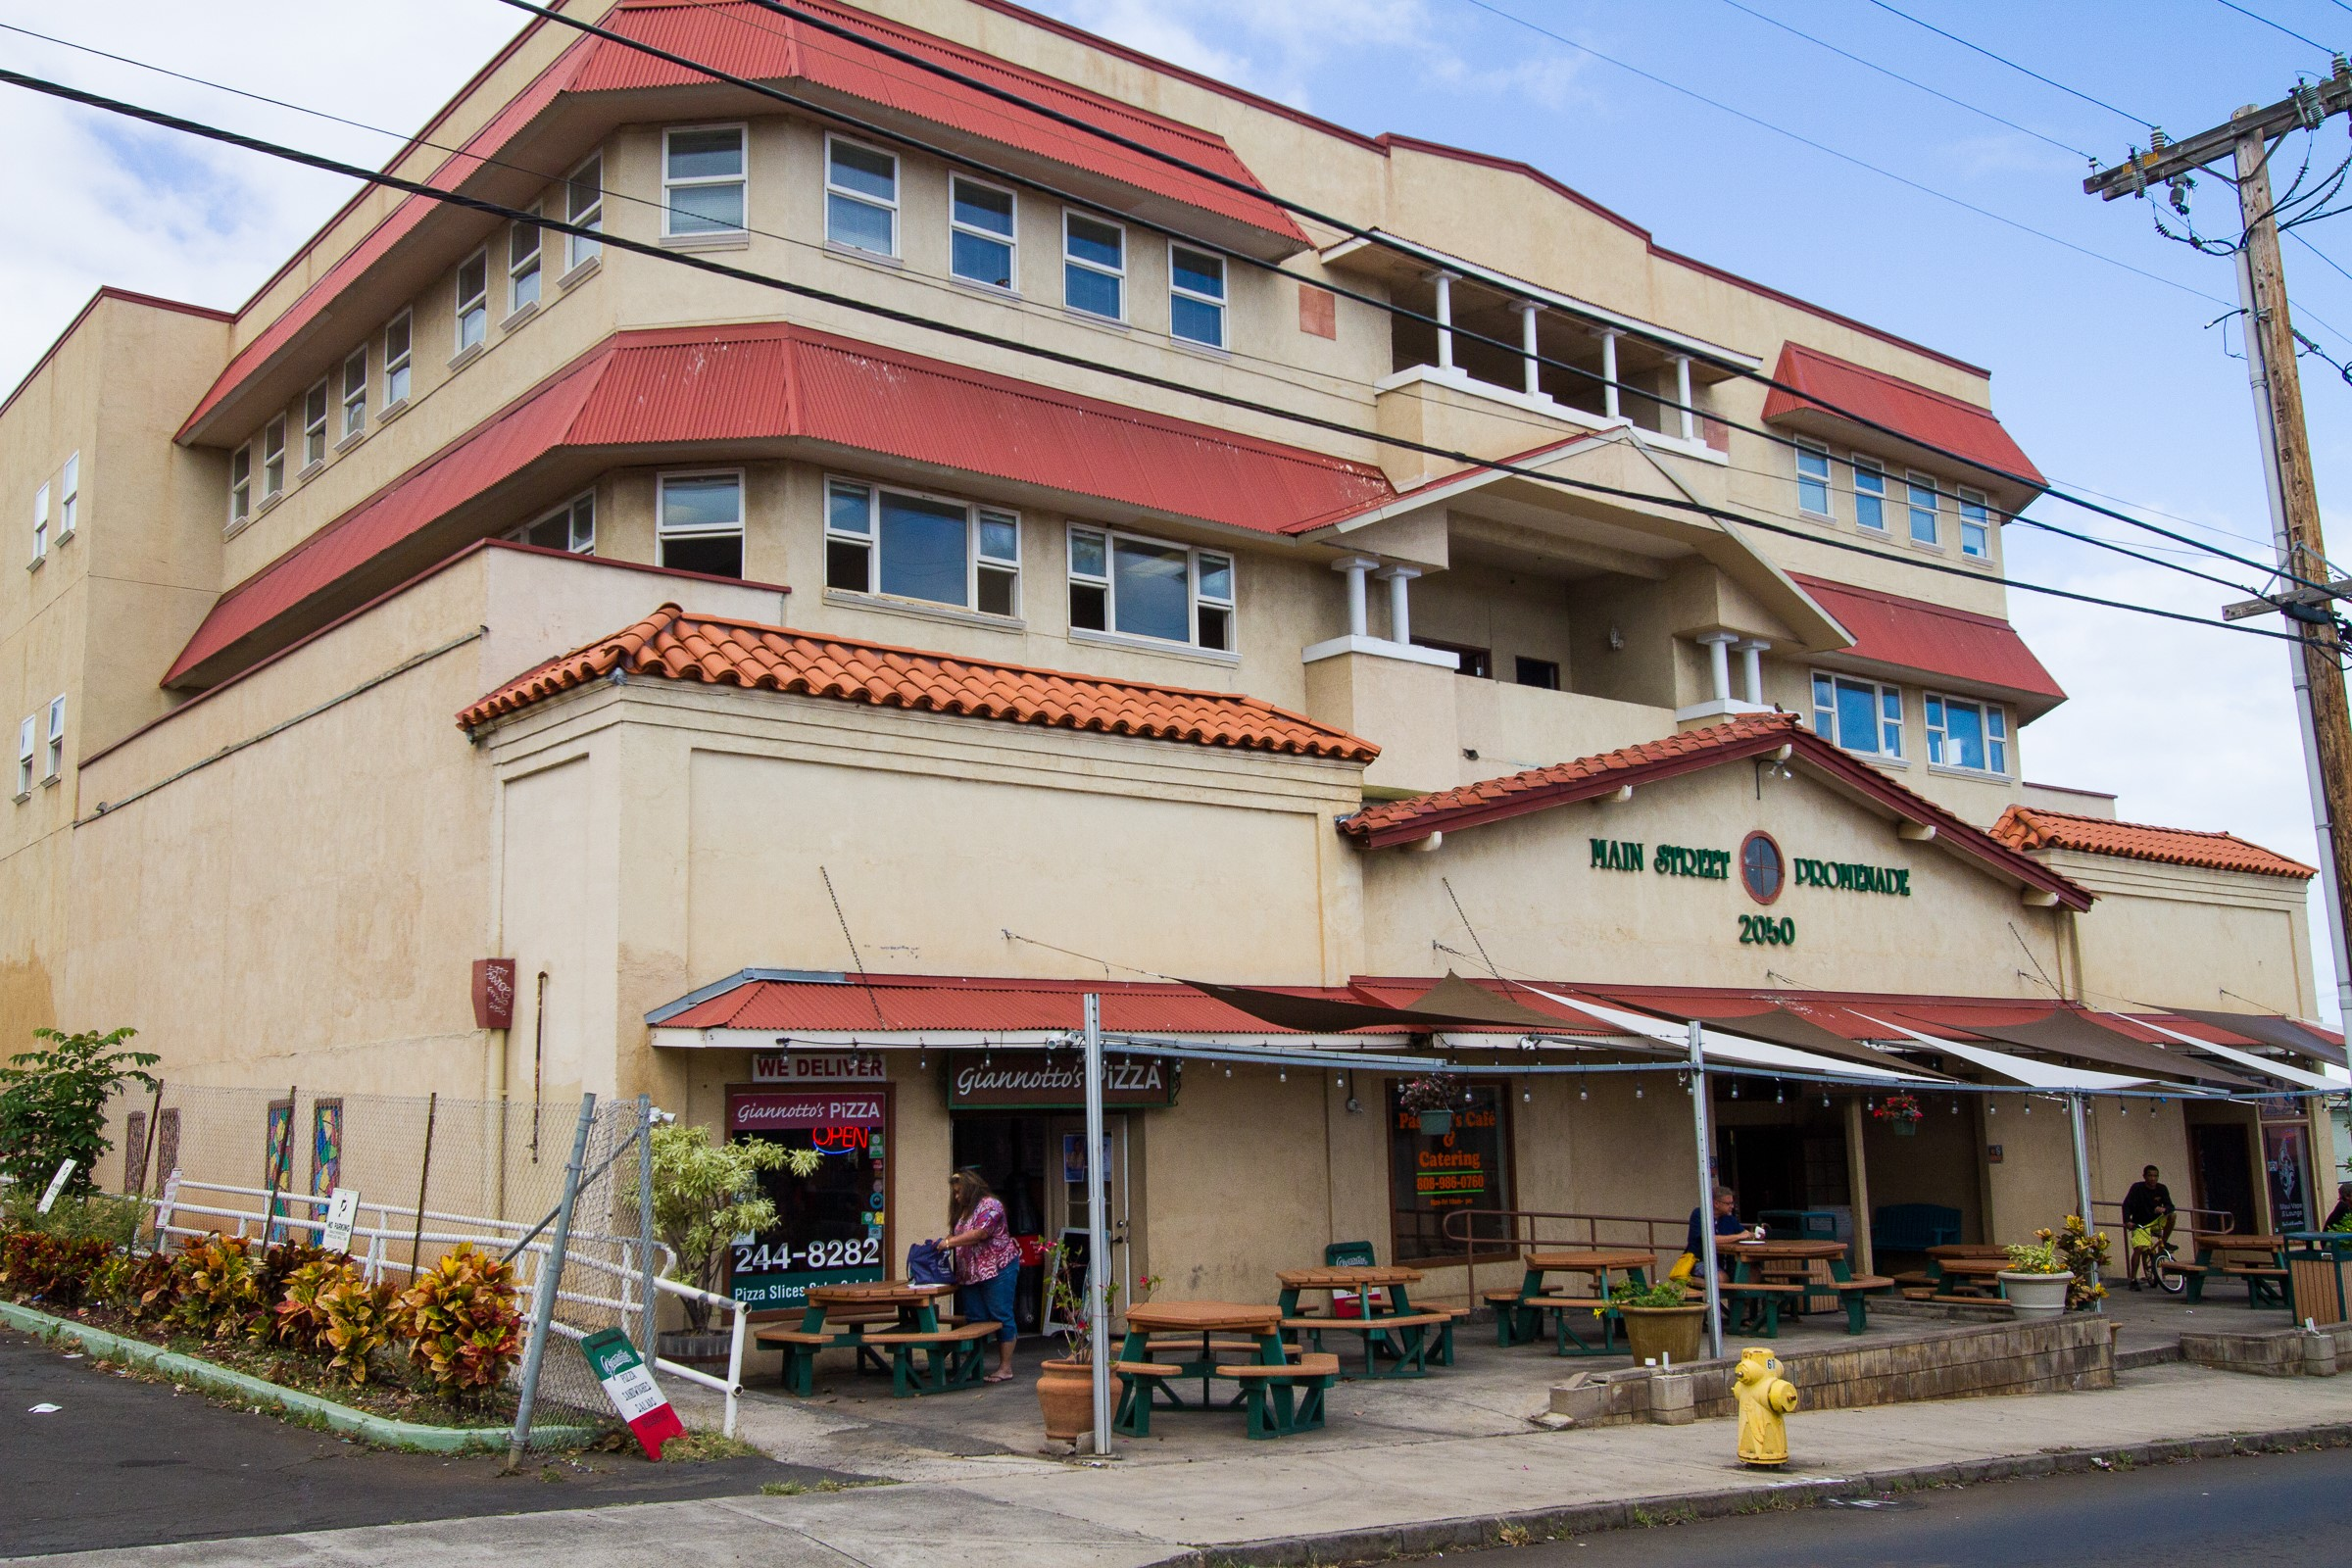 Kokua Realty Commercial Real Estate For Sale 2050 Main Street Wailuku Maui Hawaii Keoni Fursse Hawaii Investment Properties